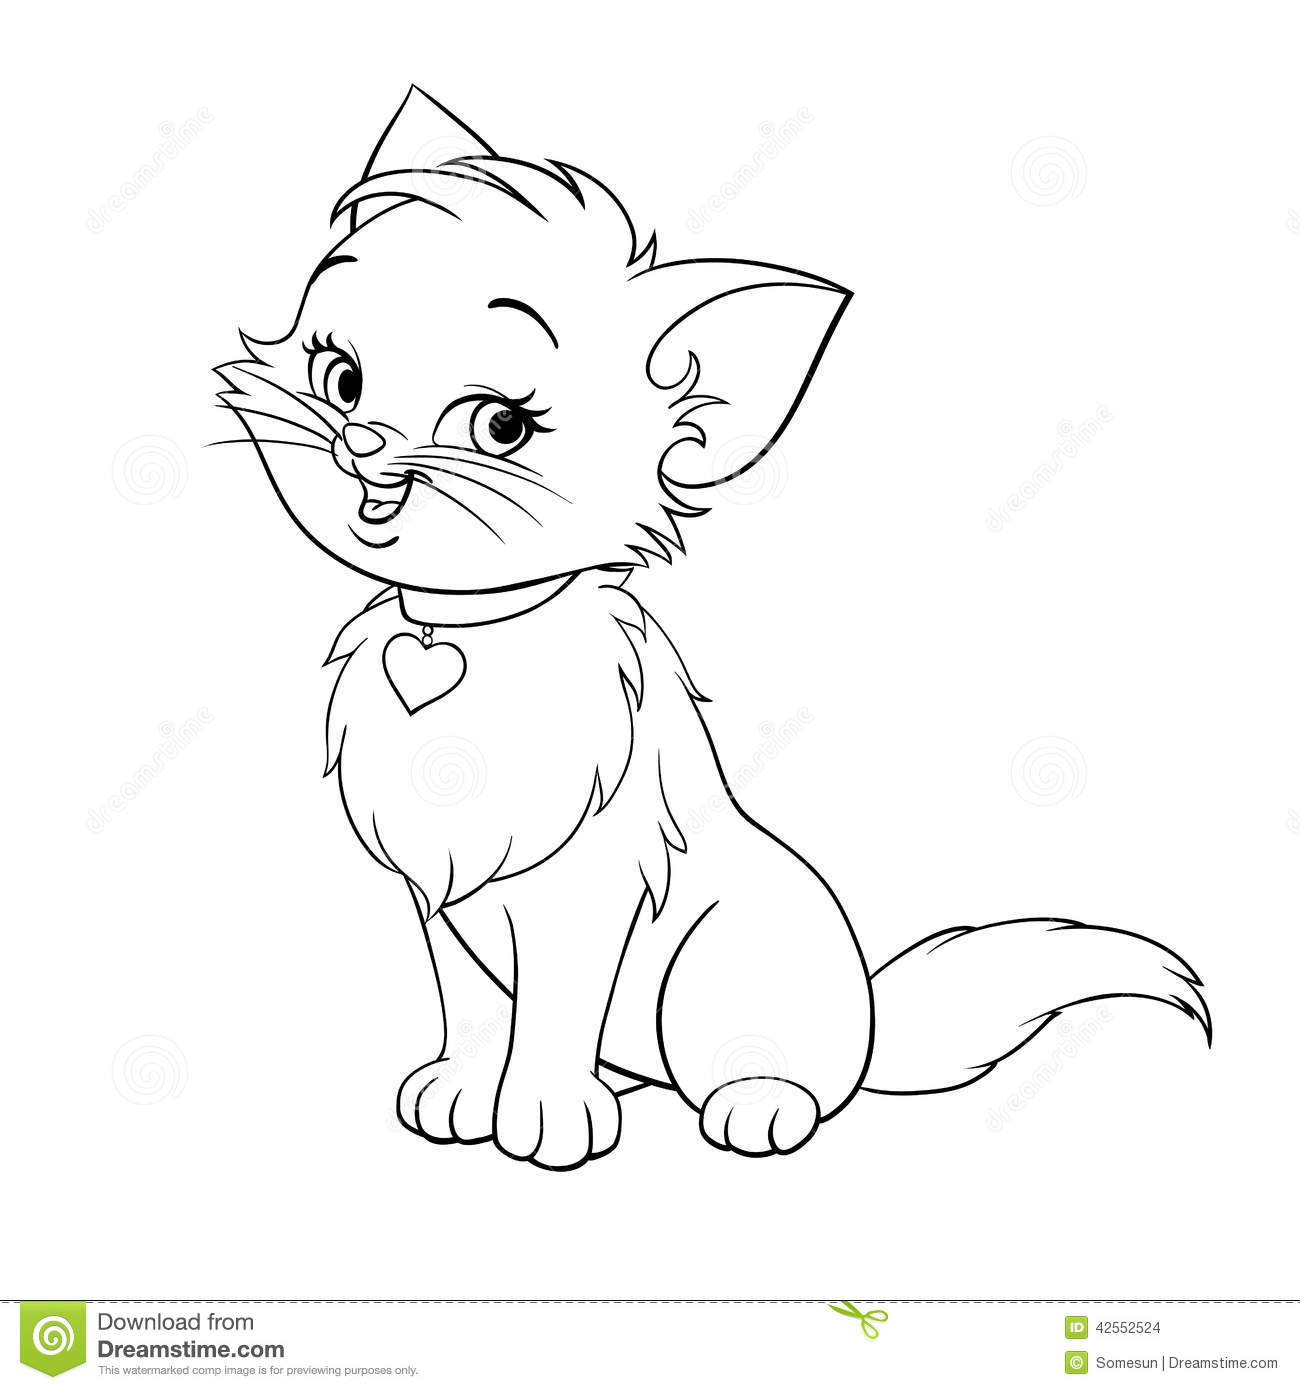 Cat Contour Line Drawing : Vector cartoon fun cute kitten line art stock